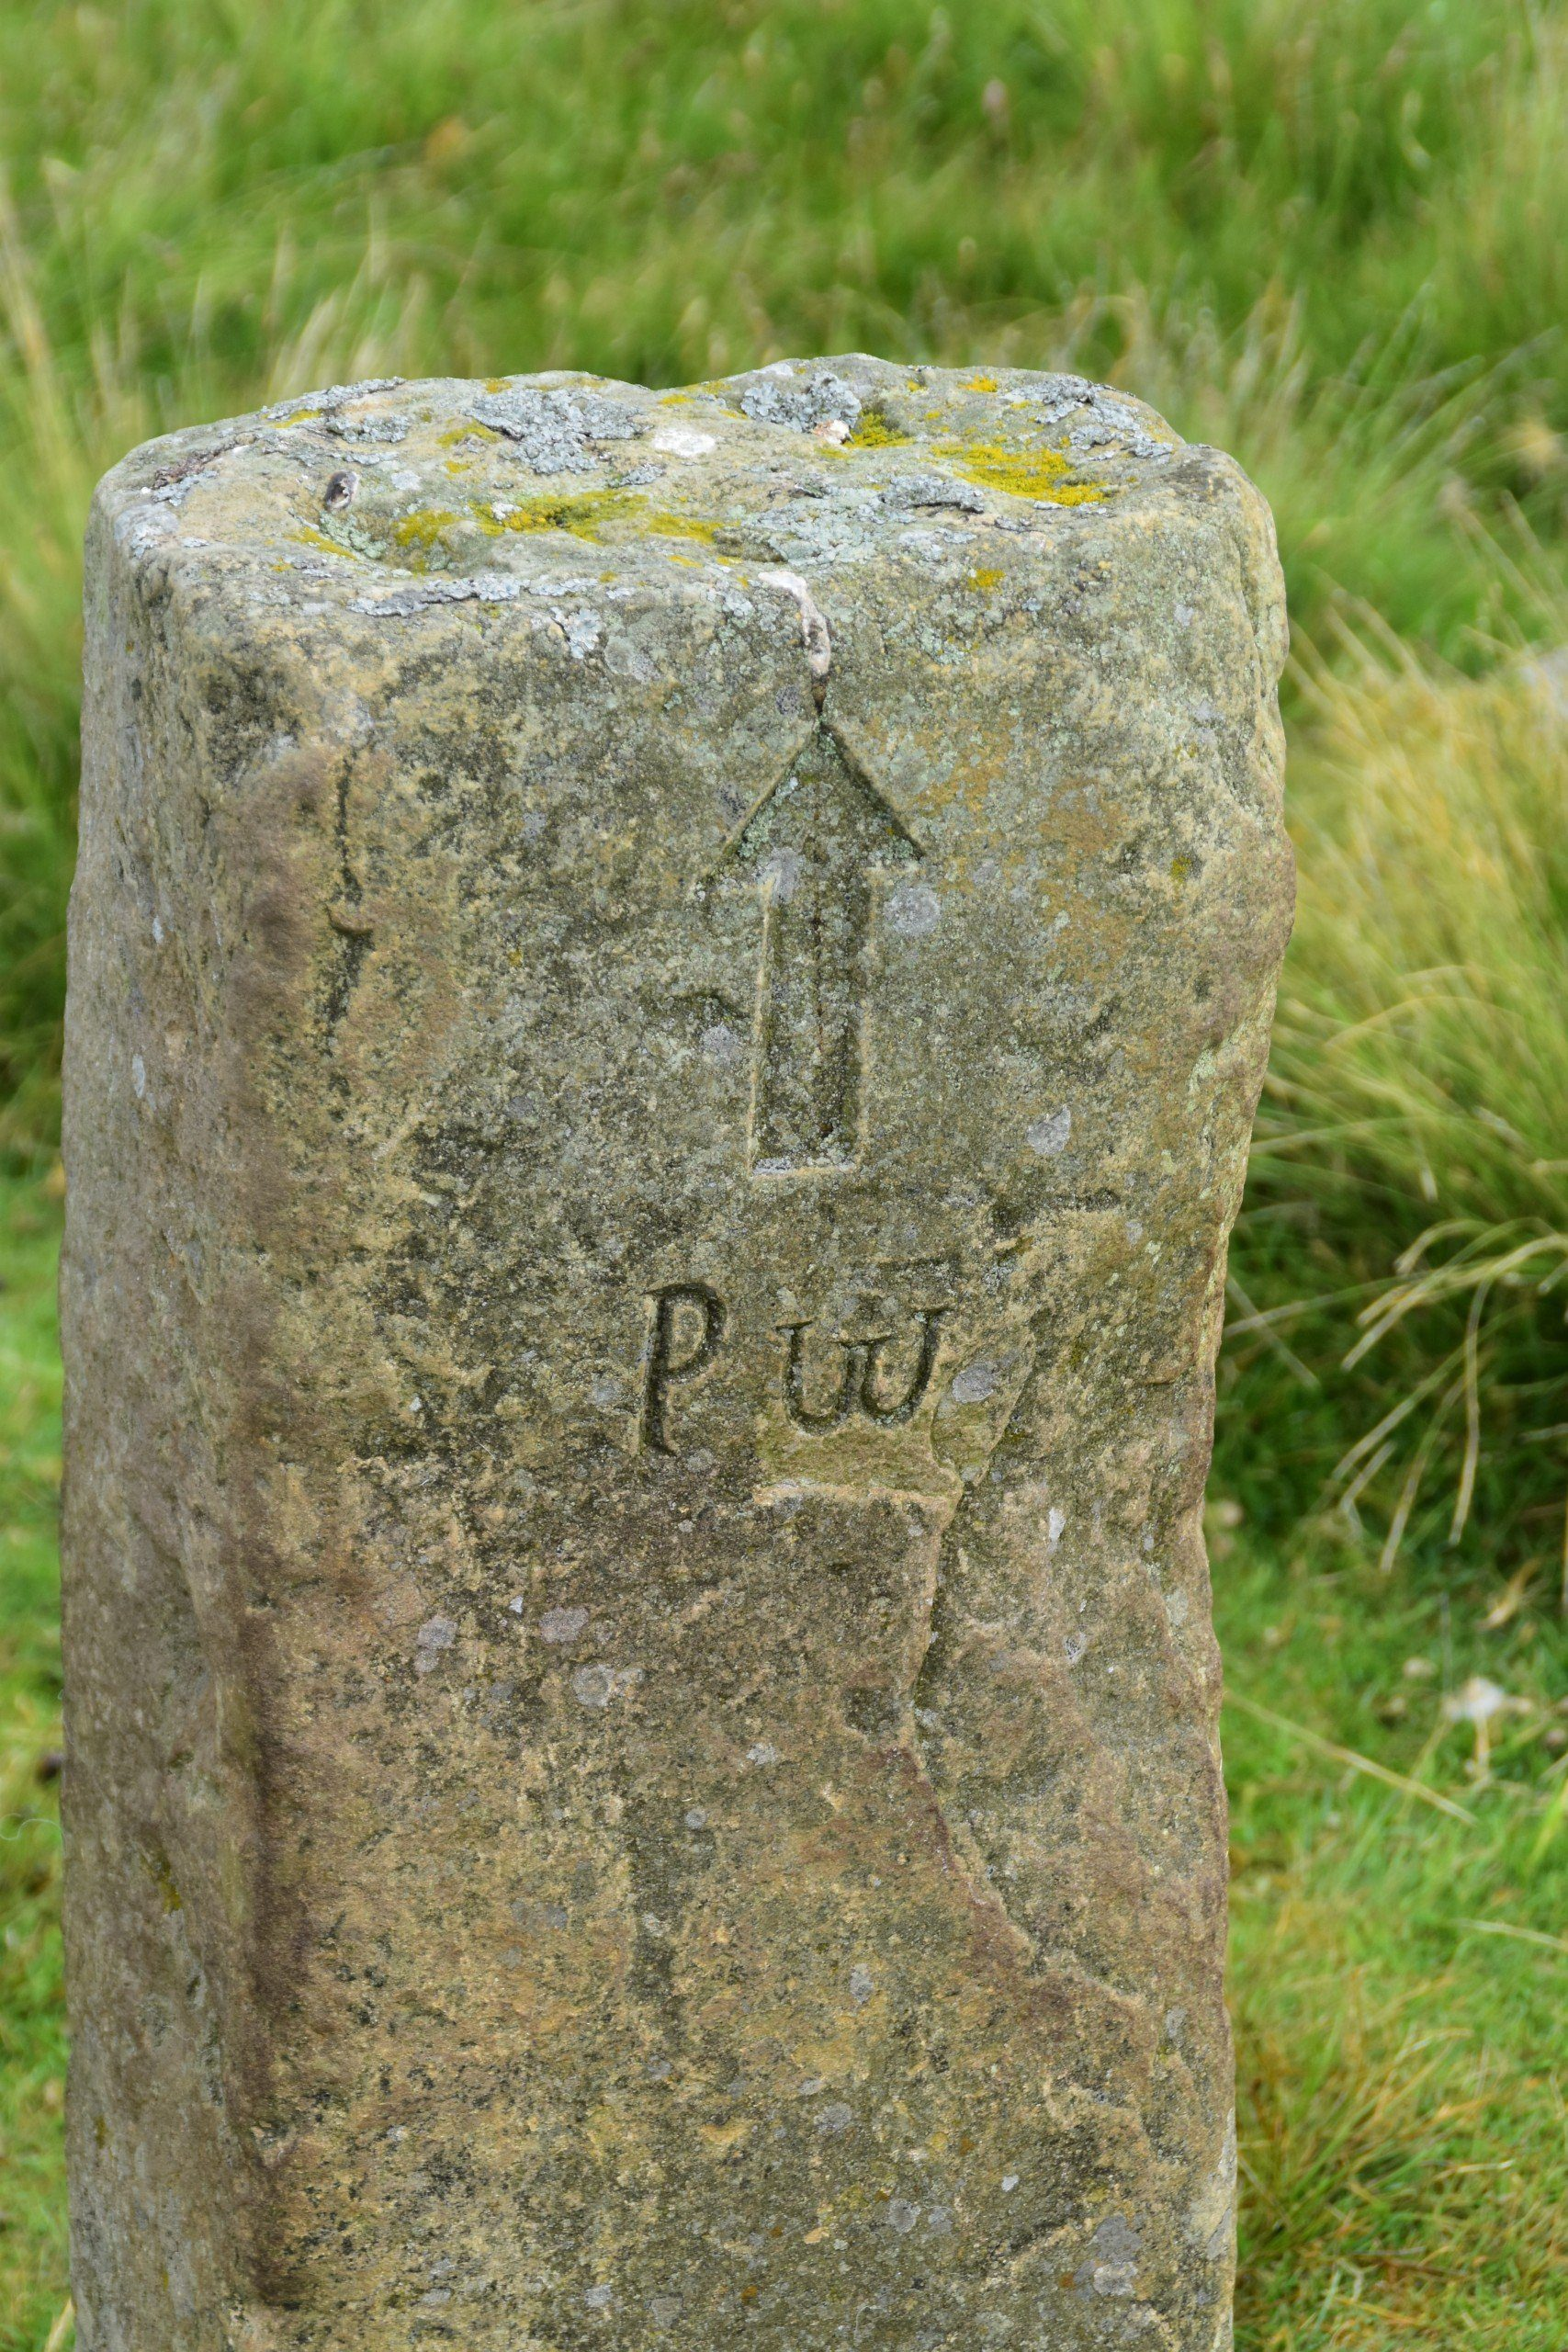 'PW' carved into stone - a rudimentary signpost